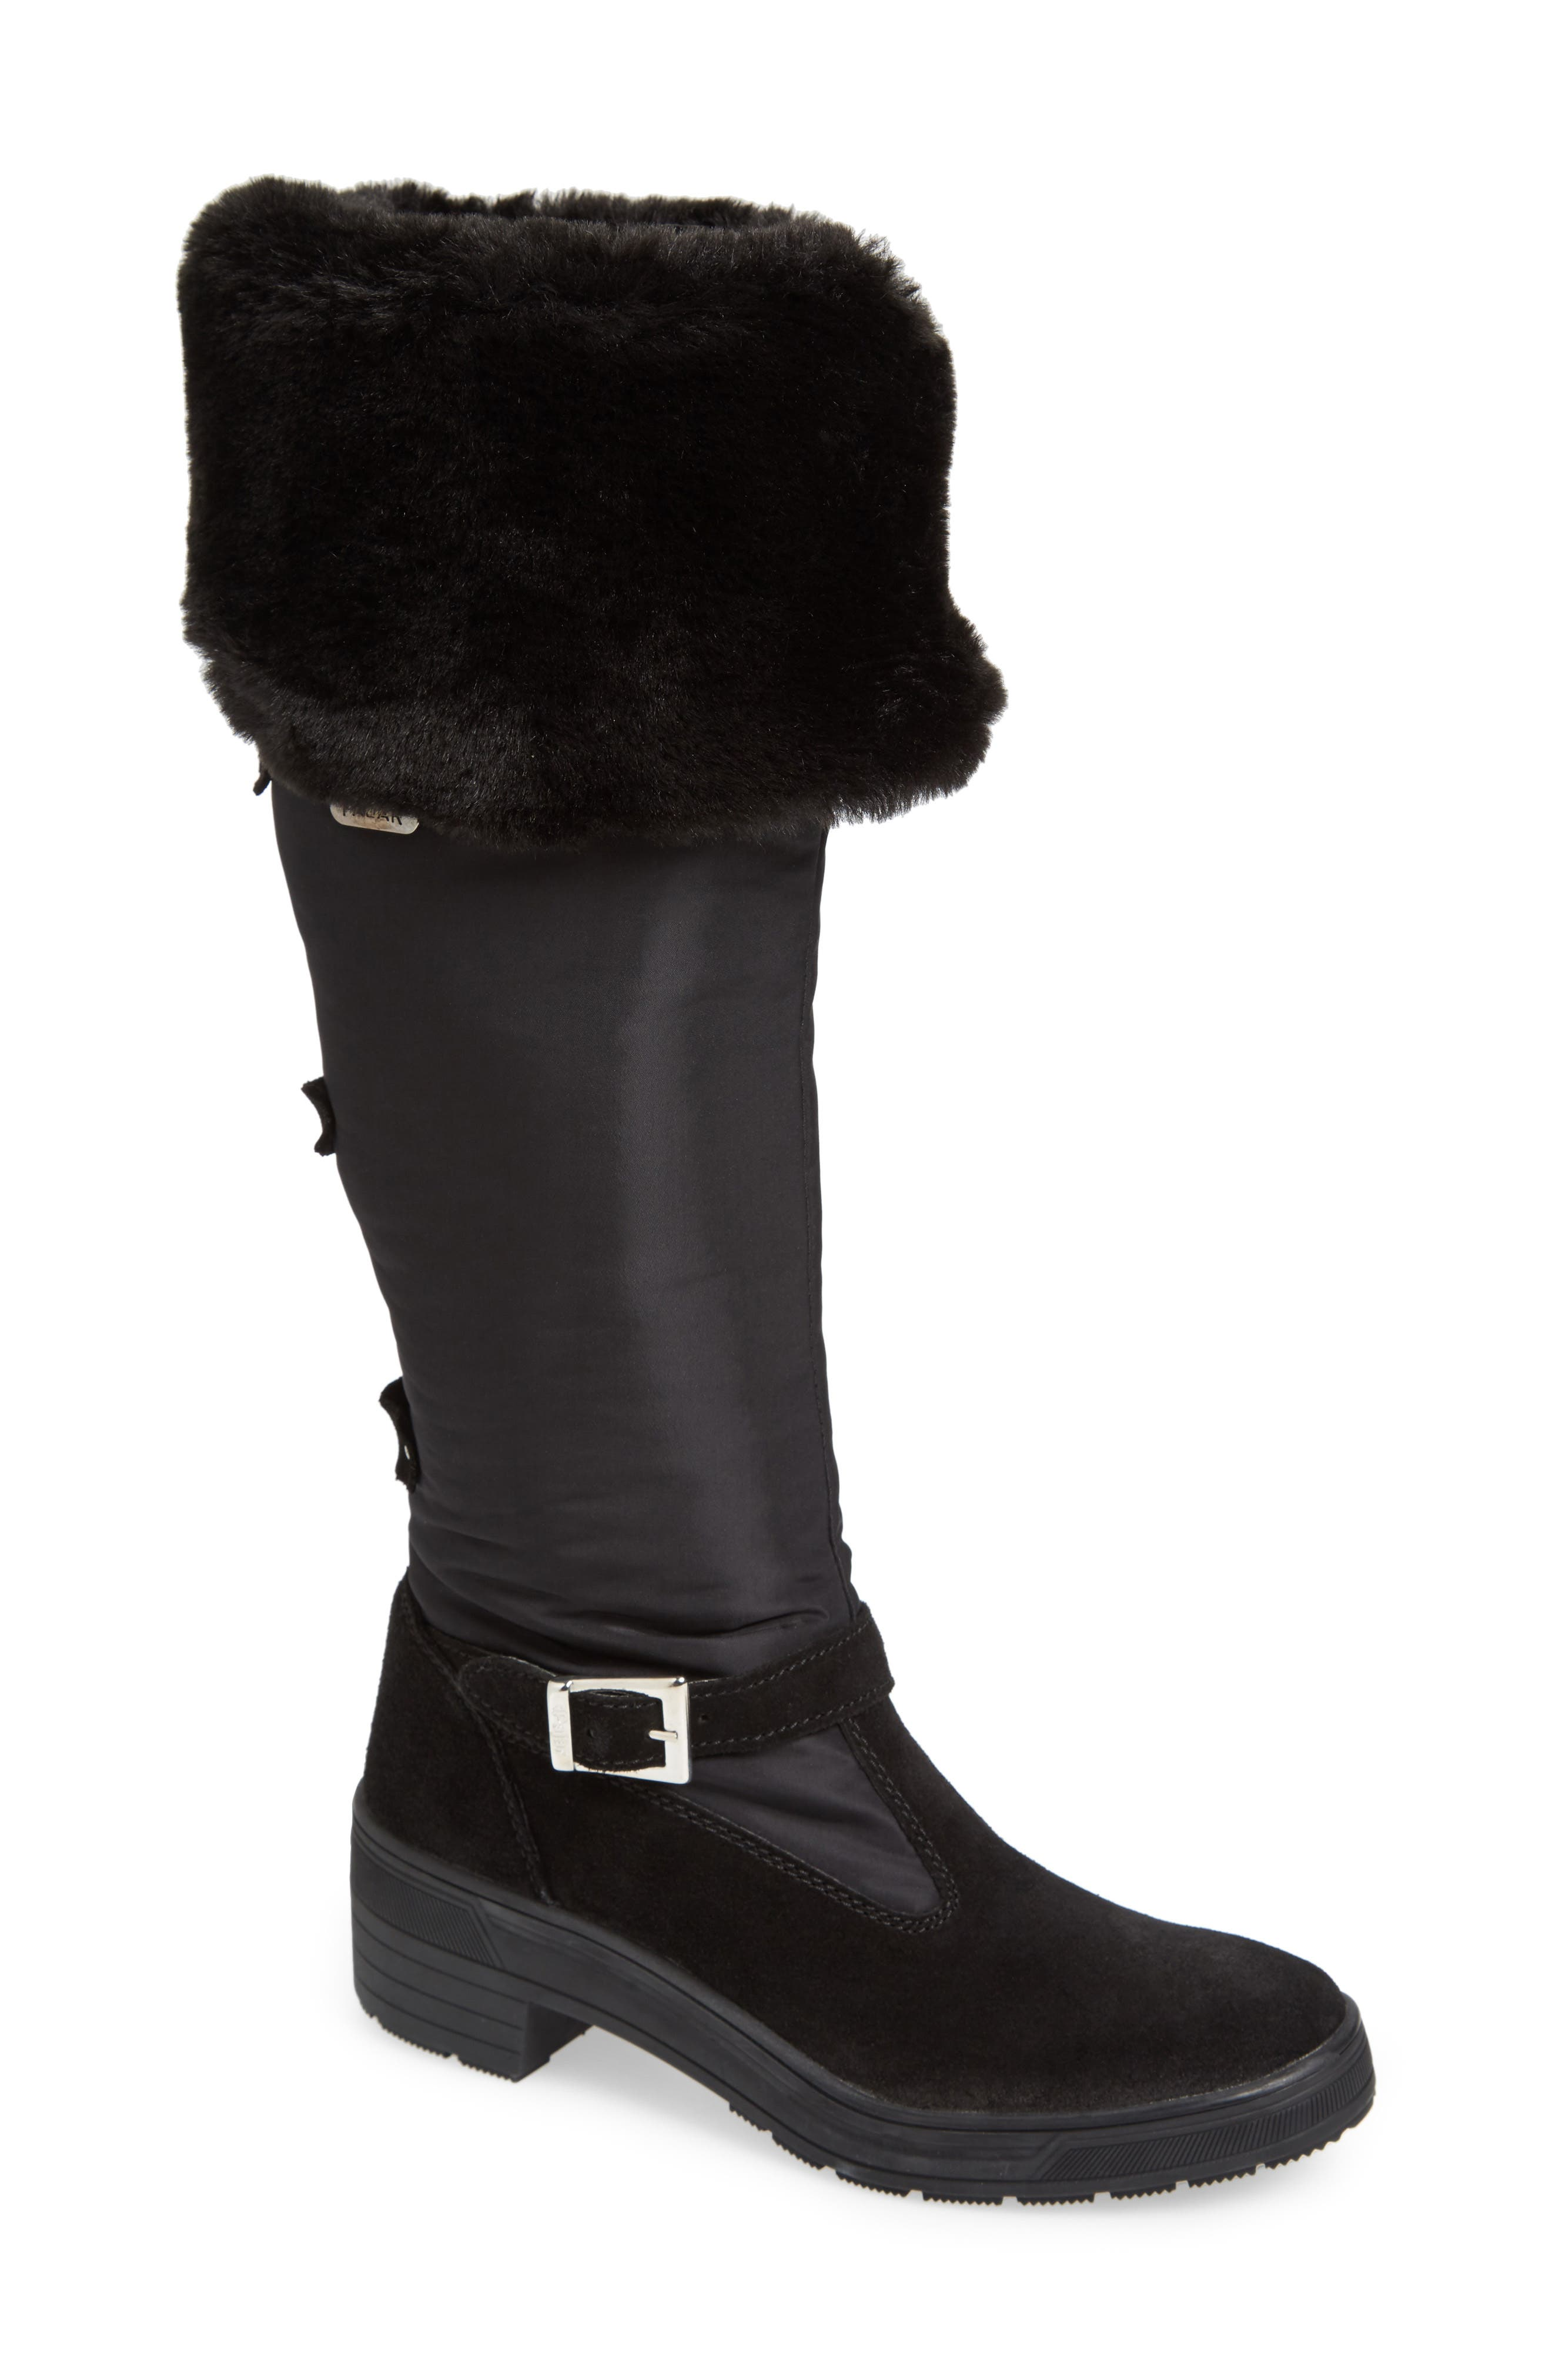 Norah Waterproof Boot with Faux Fur Cuff,                             Main thumbnail 1, color,